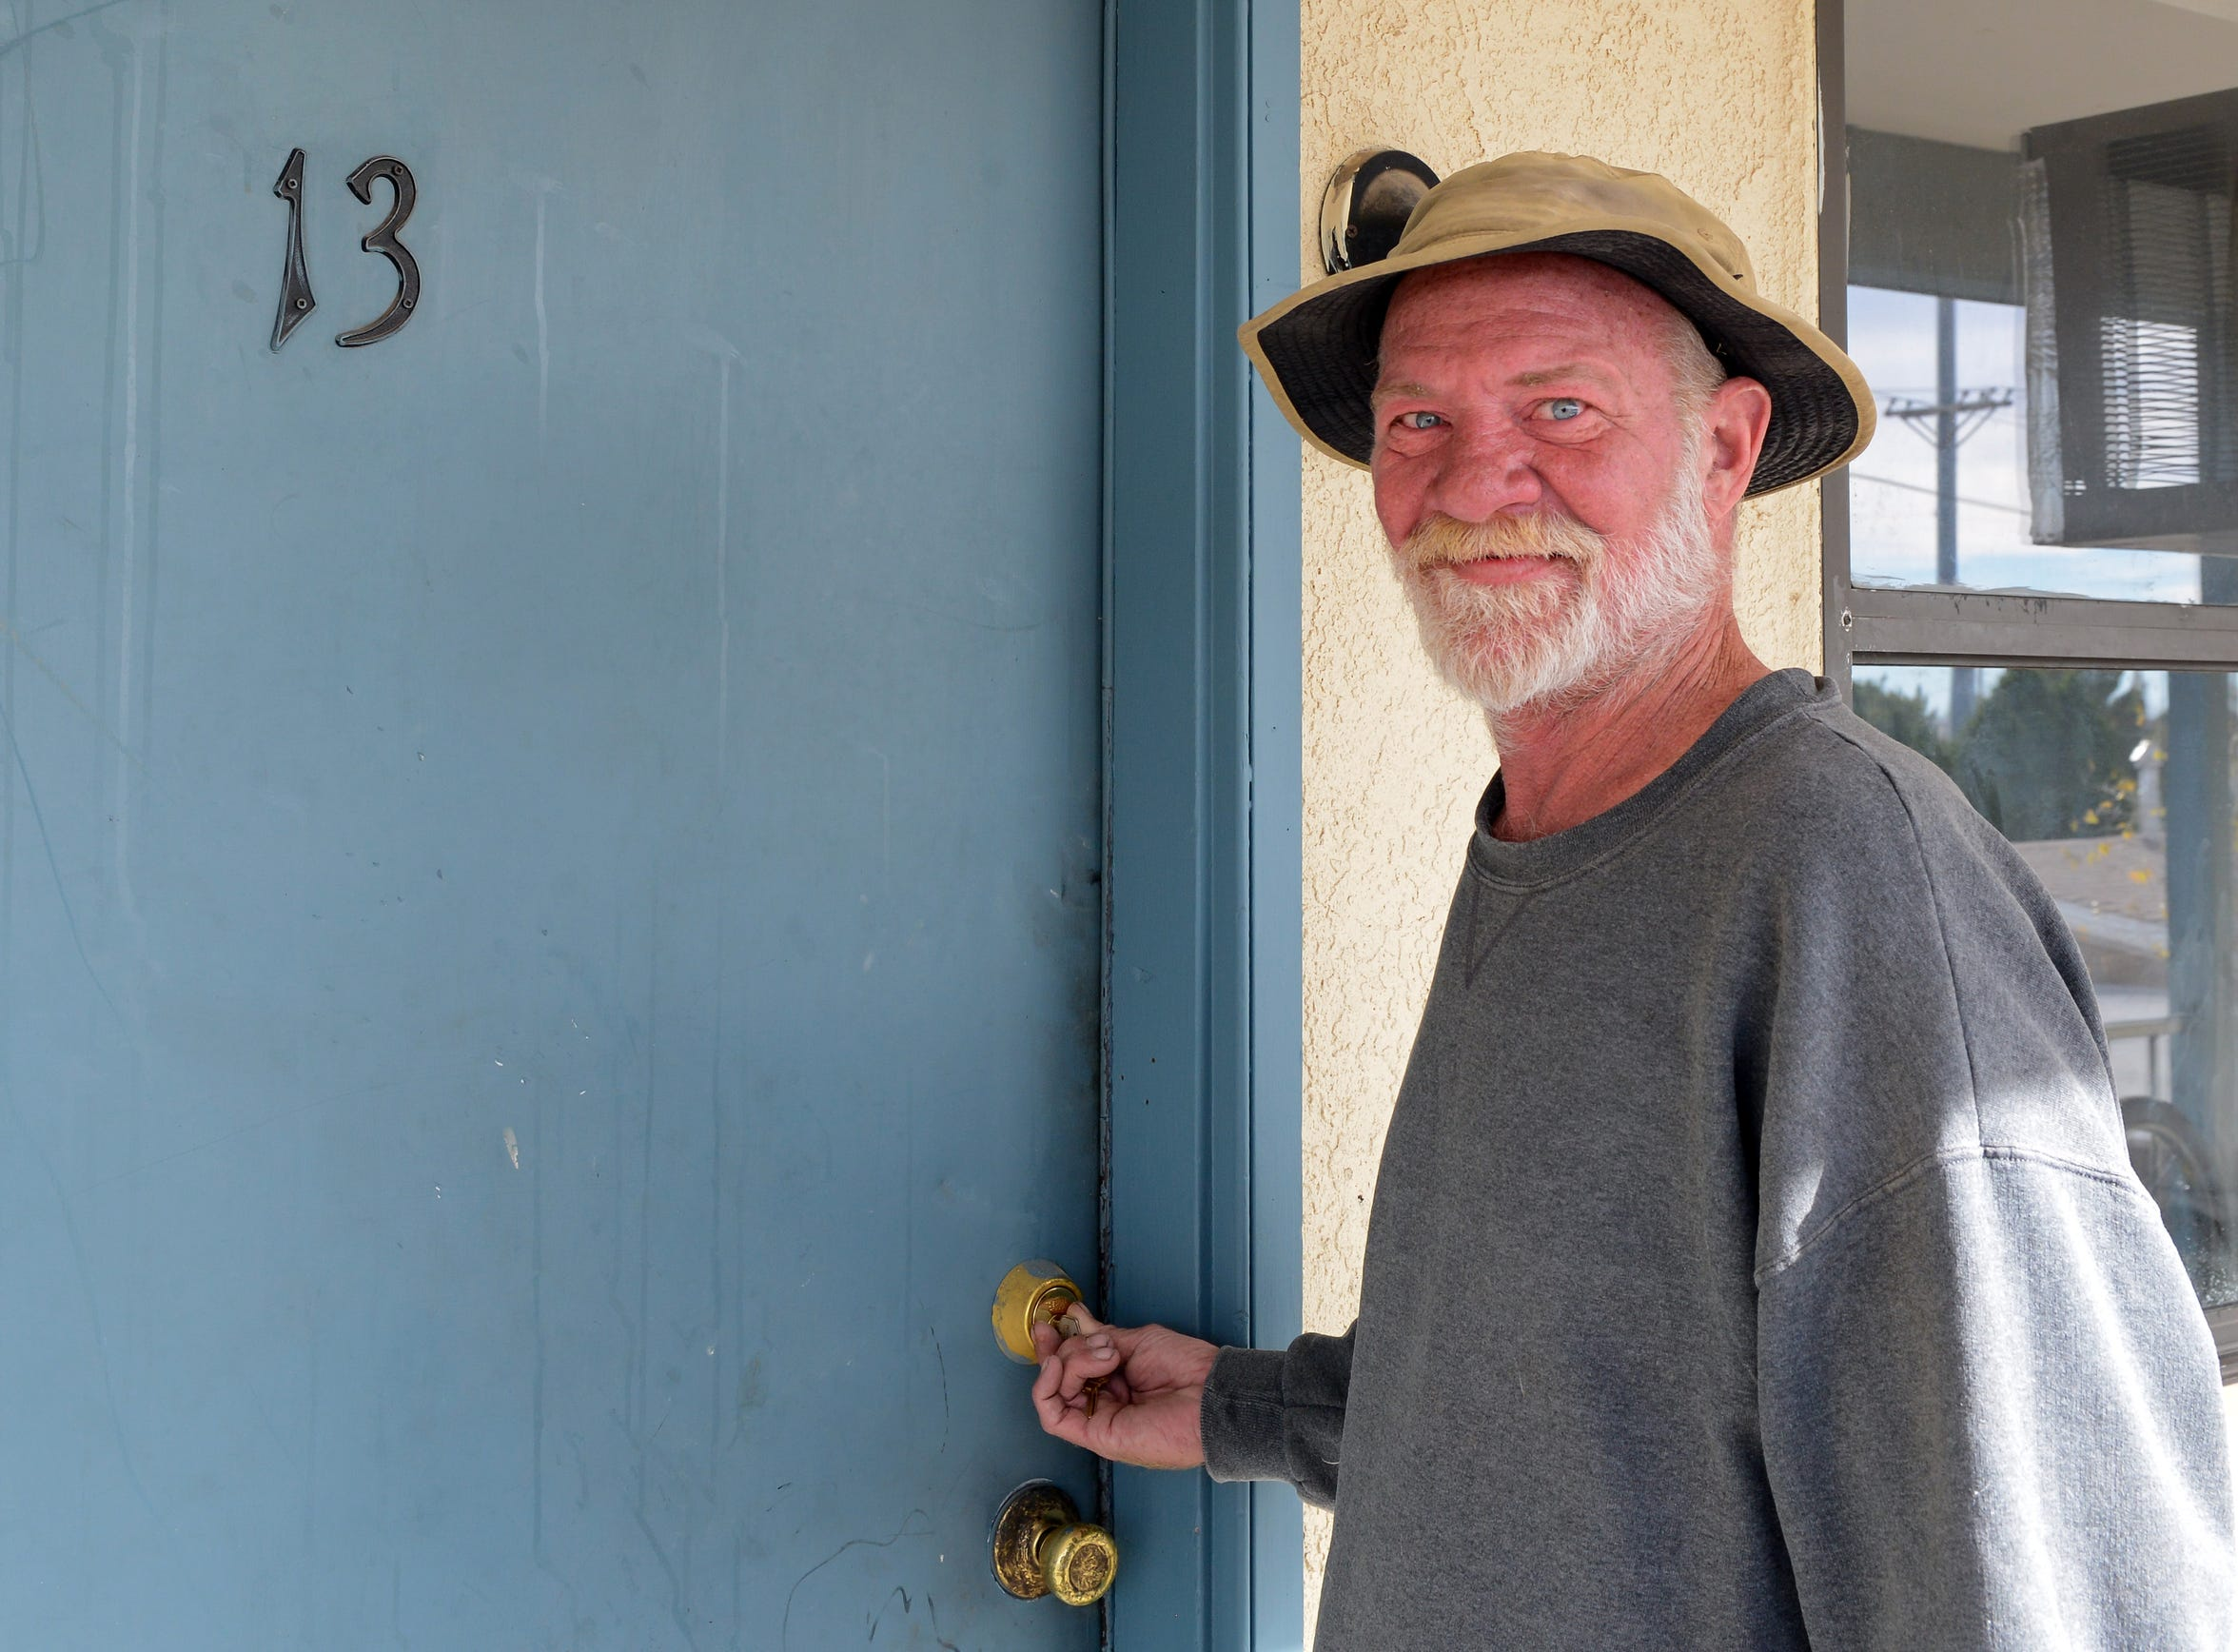 Alan Abrams opens the door of his new apartment in Las Cruces on Thursday, Nov. 29, 2018. He was moved out of a tent city for the homeless as part of Community of Hope's Tents to Rents program.